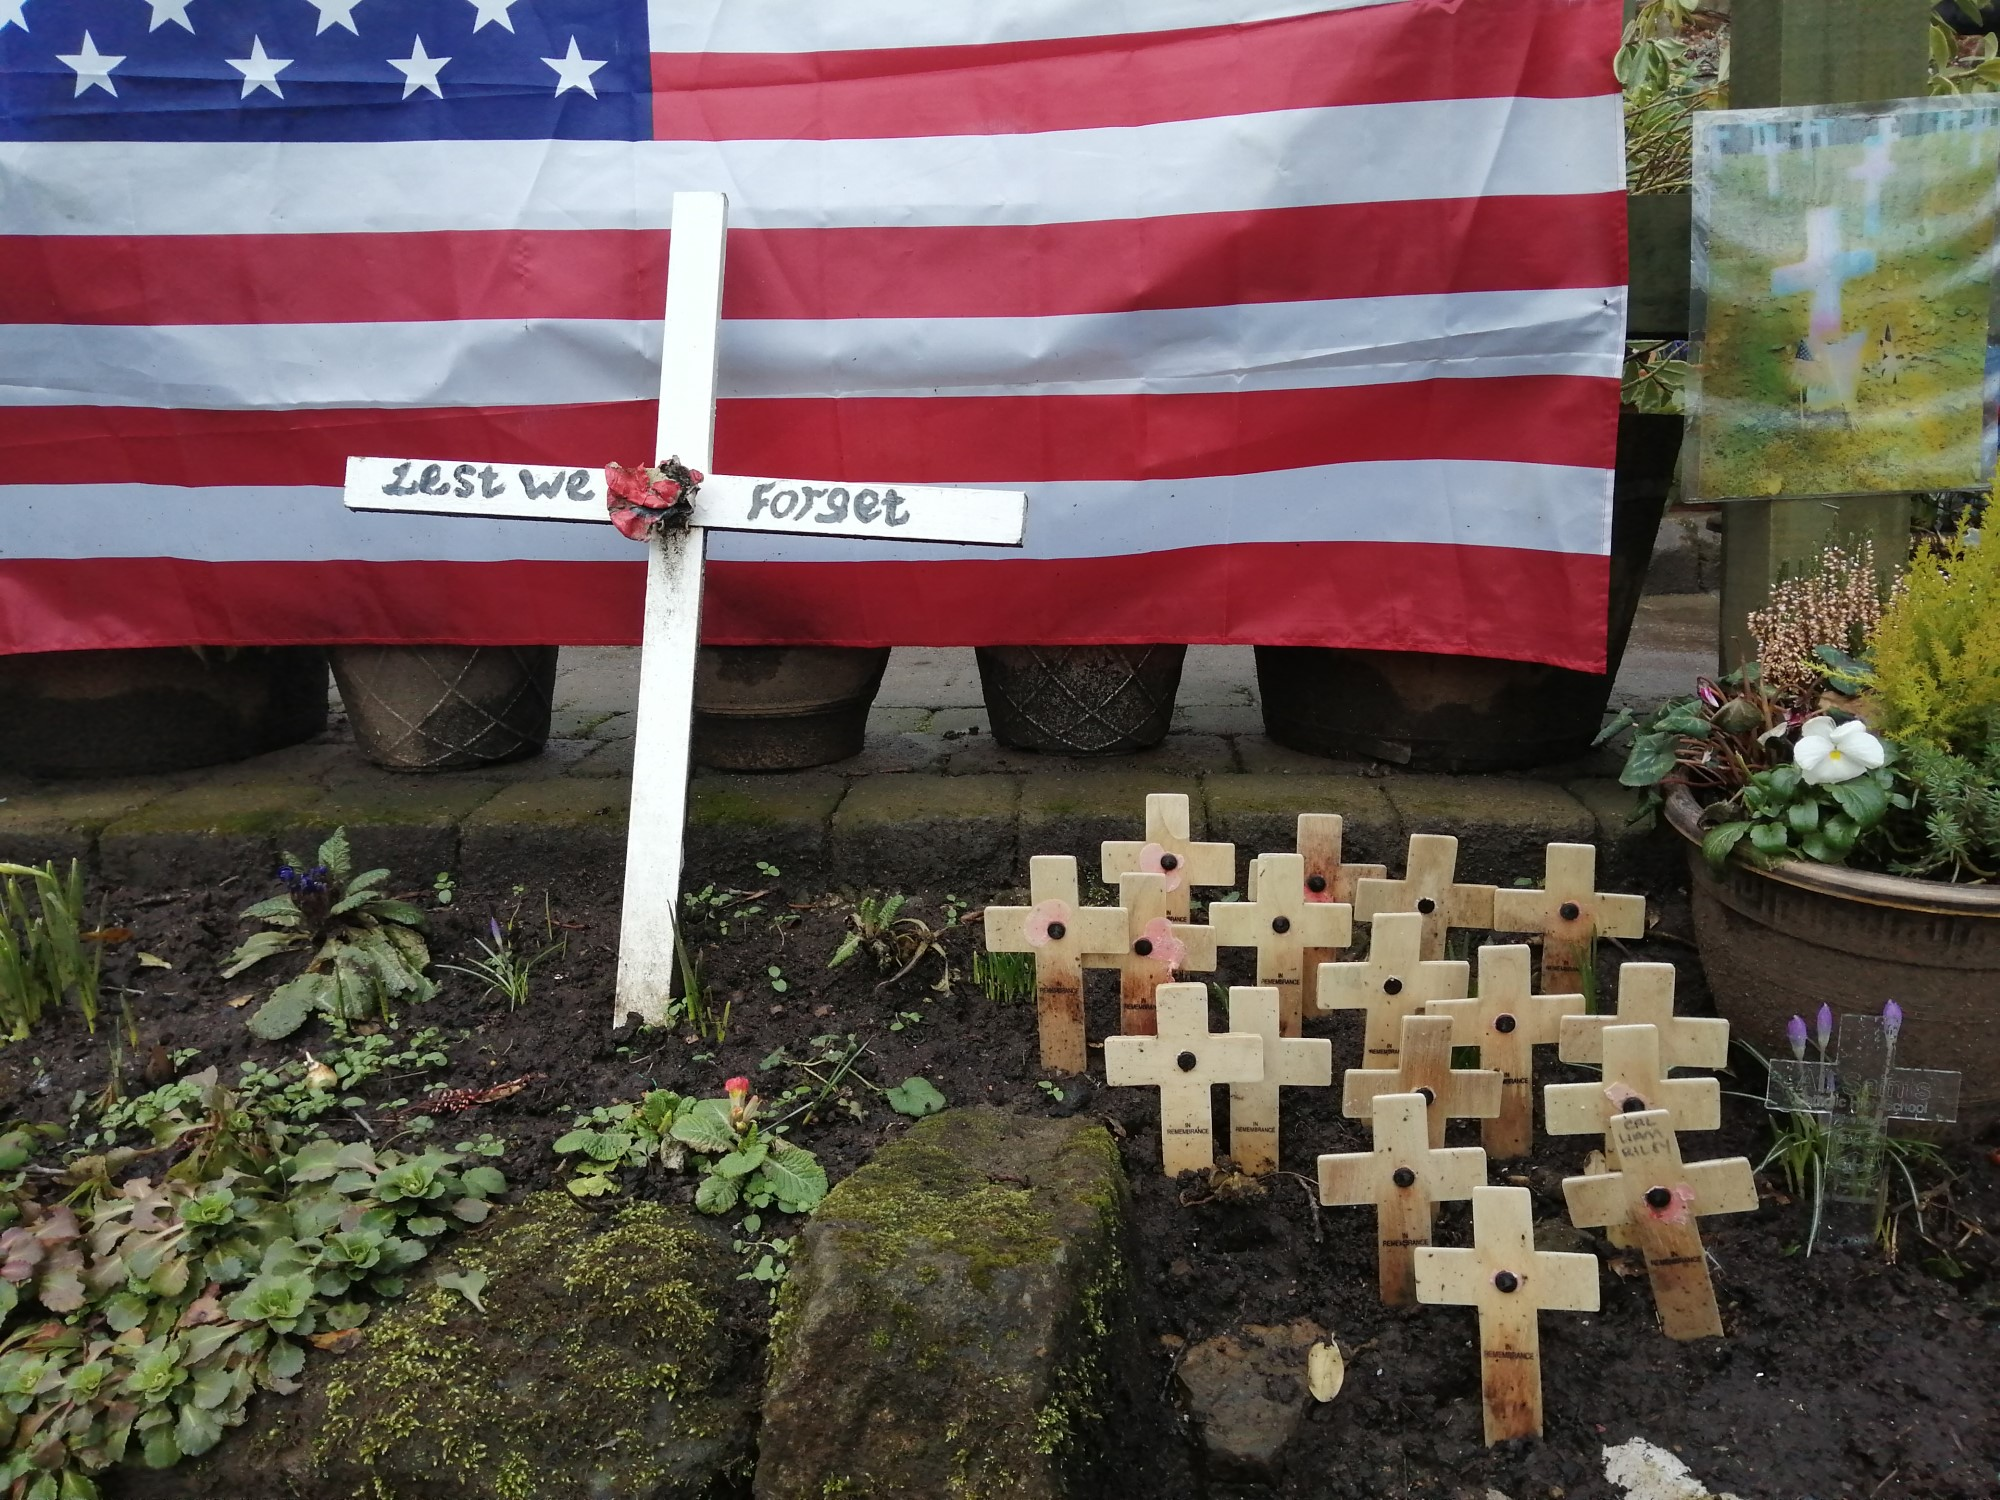 Image of memorial with cross and USA flag